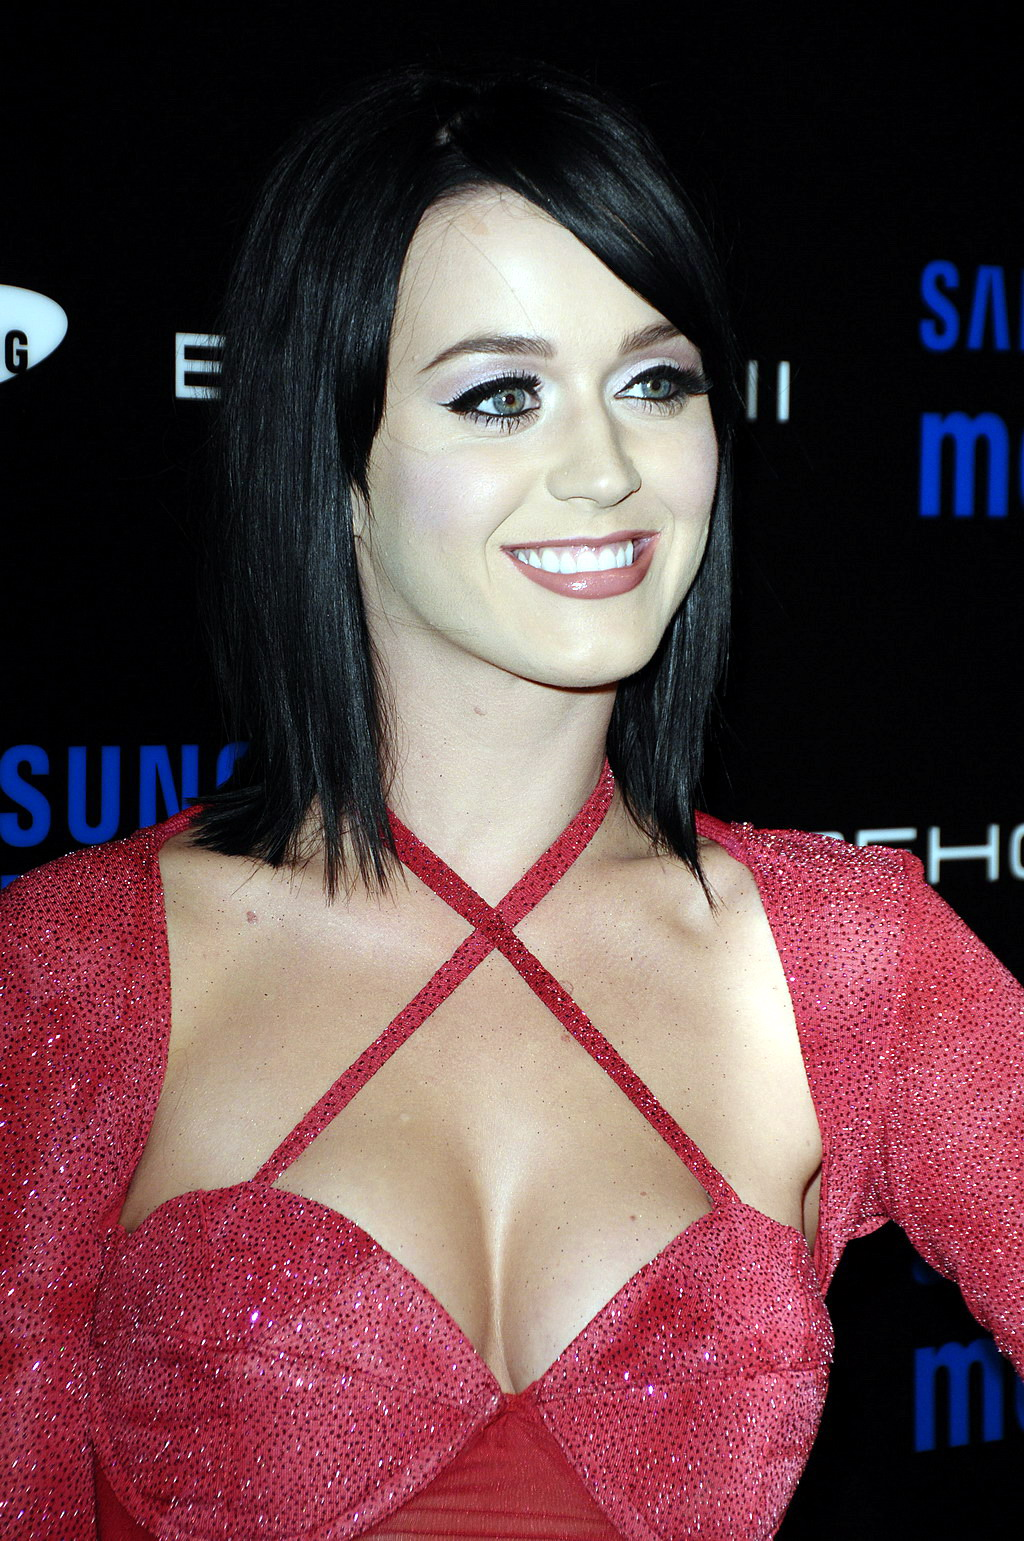 DOES Katy perry pornstar totally